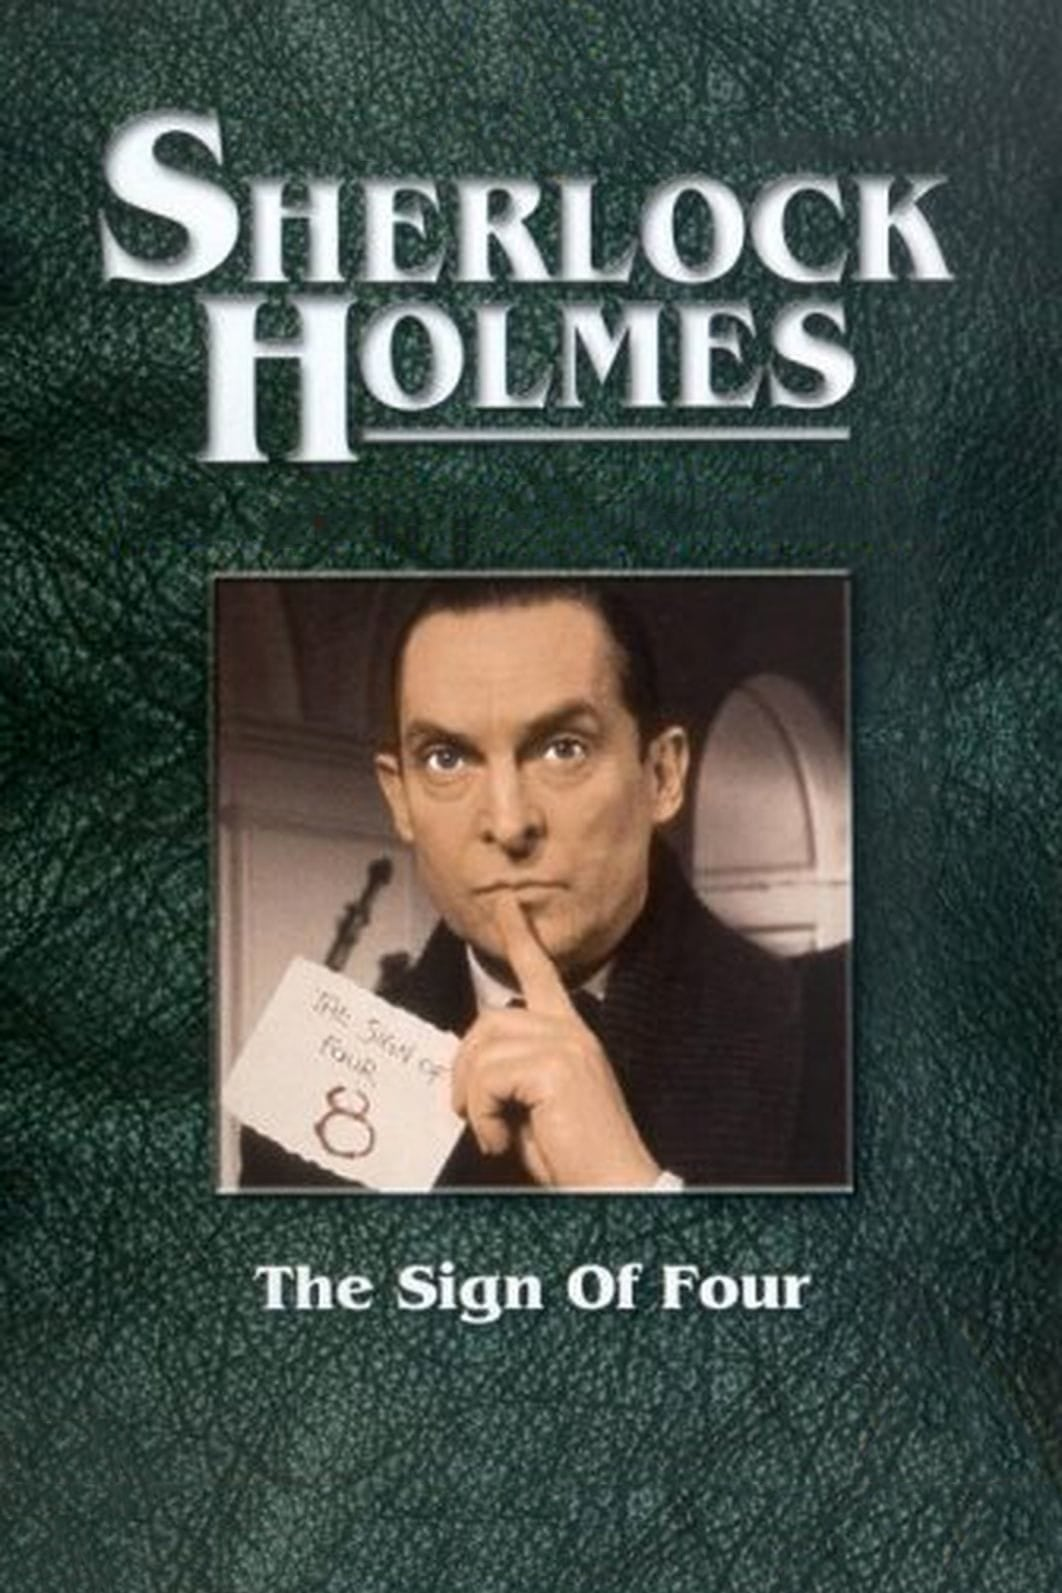 Sherlock Holmes: The Sign of Four (1987)